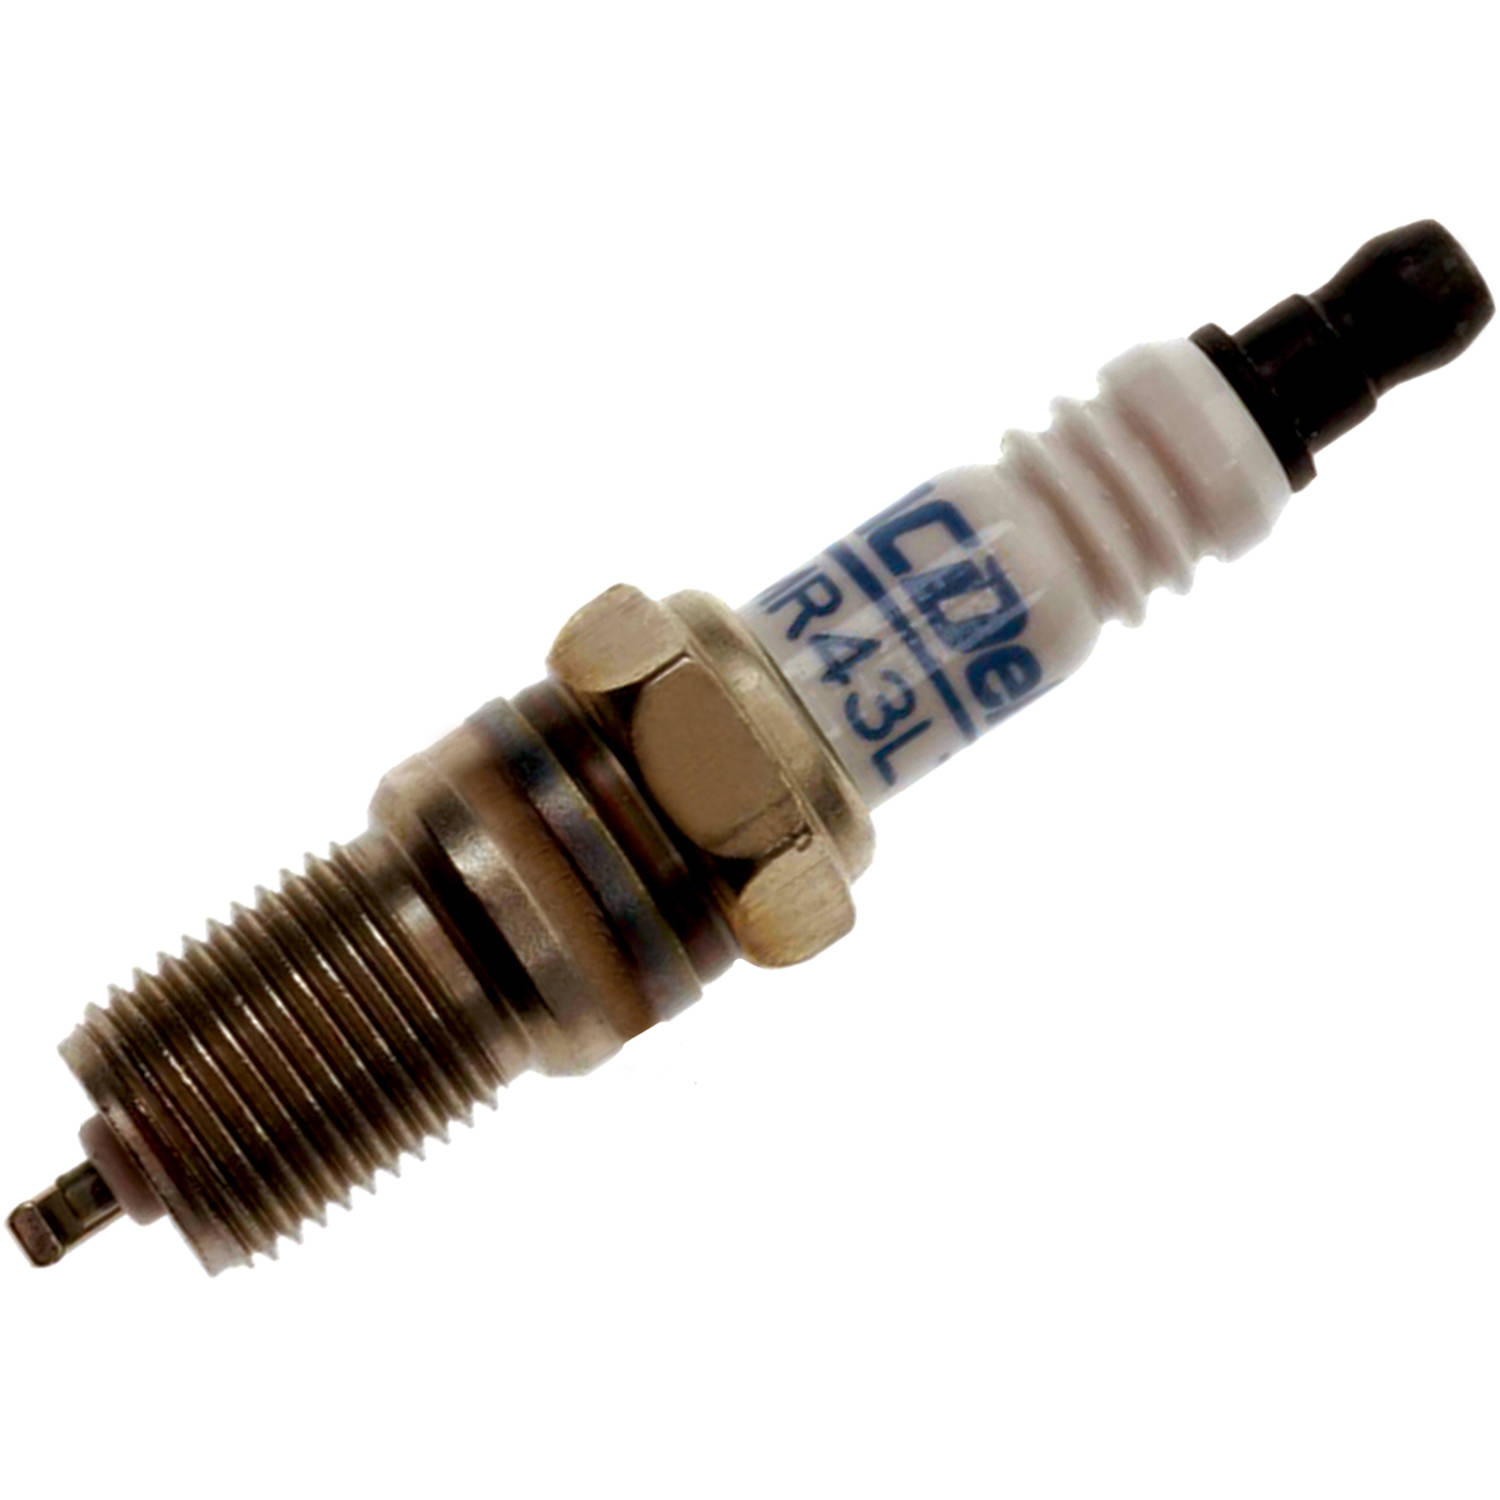 ACDelco Conventional Spark Plug, MR43LTS